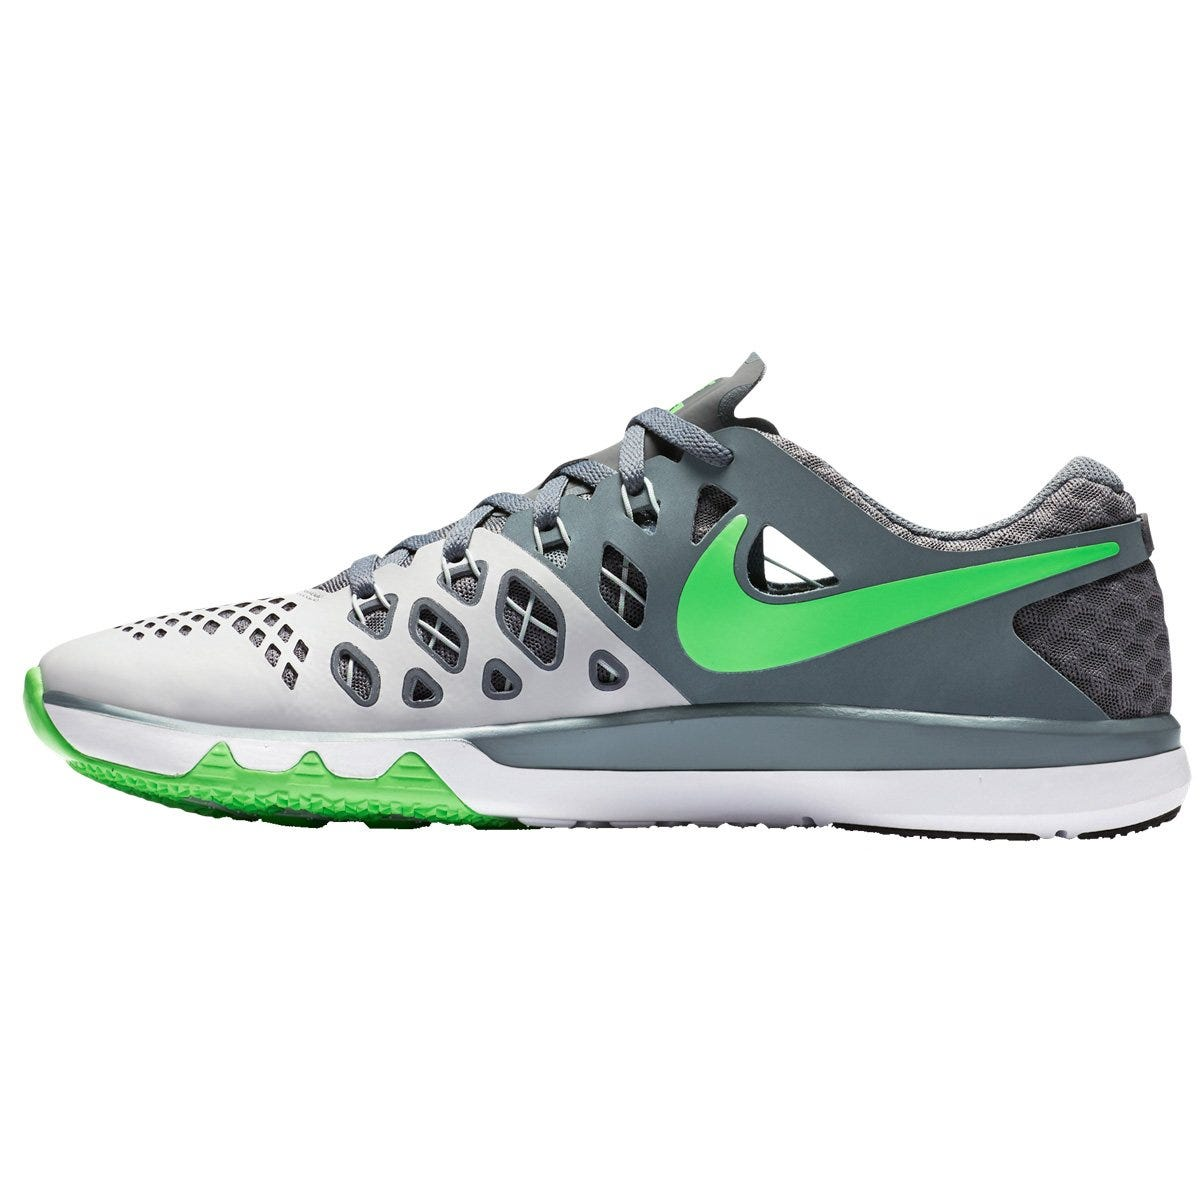 Nike Train Speed 4 Men's Training Shoes - Platinum/Gray/Green